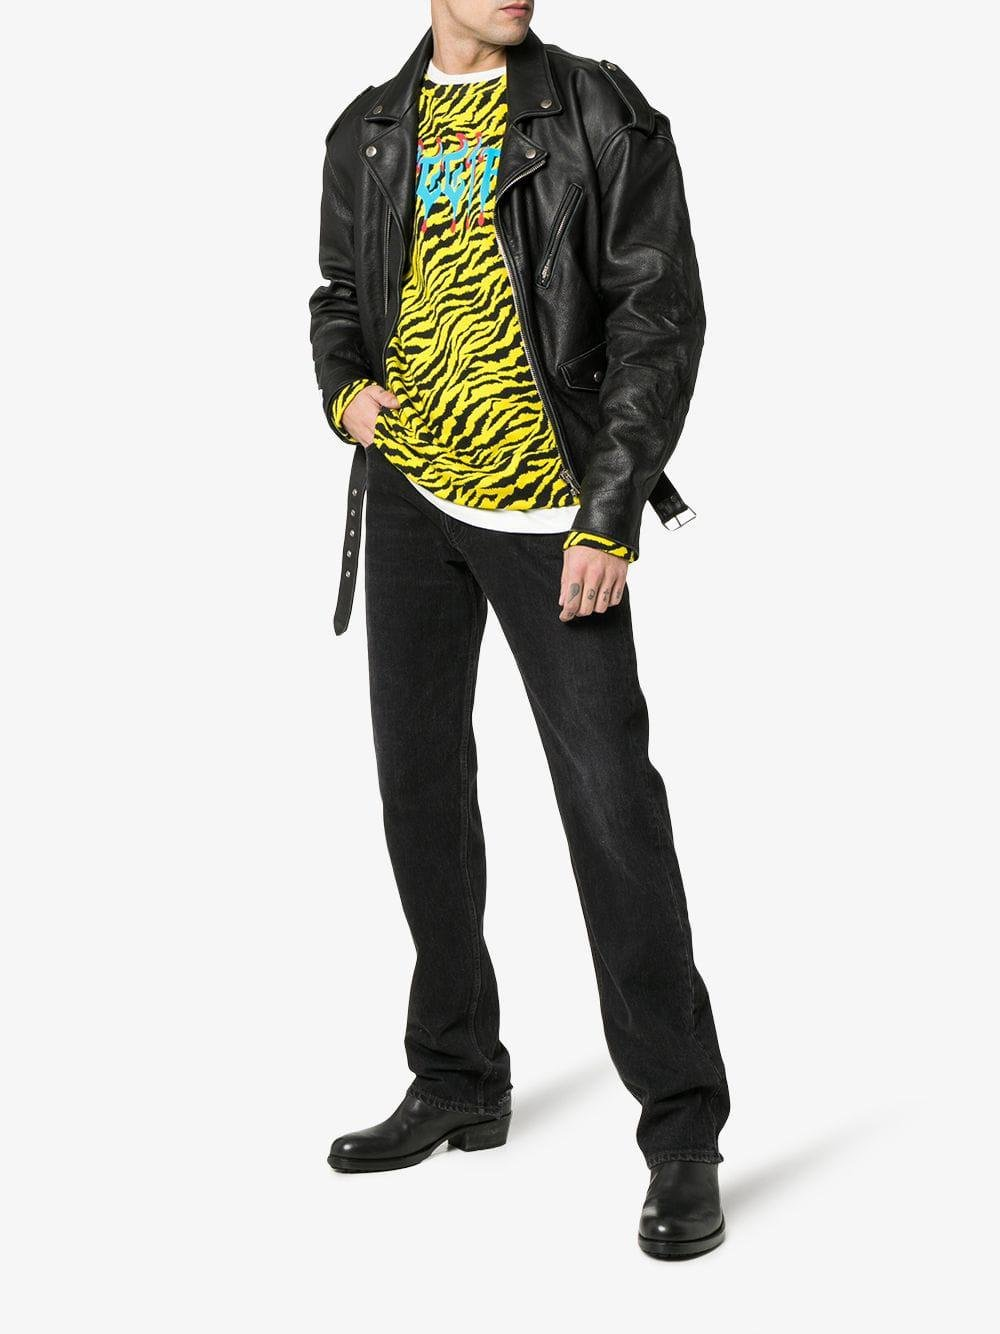 54930d57515 Lyst - Gucci Sweatshirt With Metal Fy Print in Yellow for Men